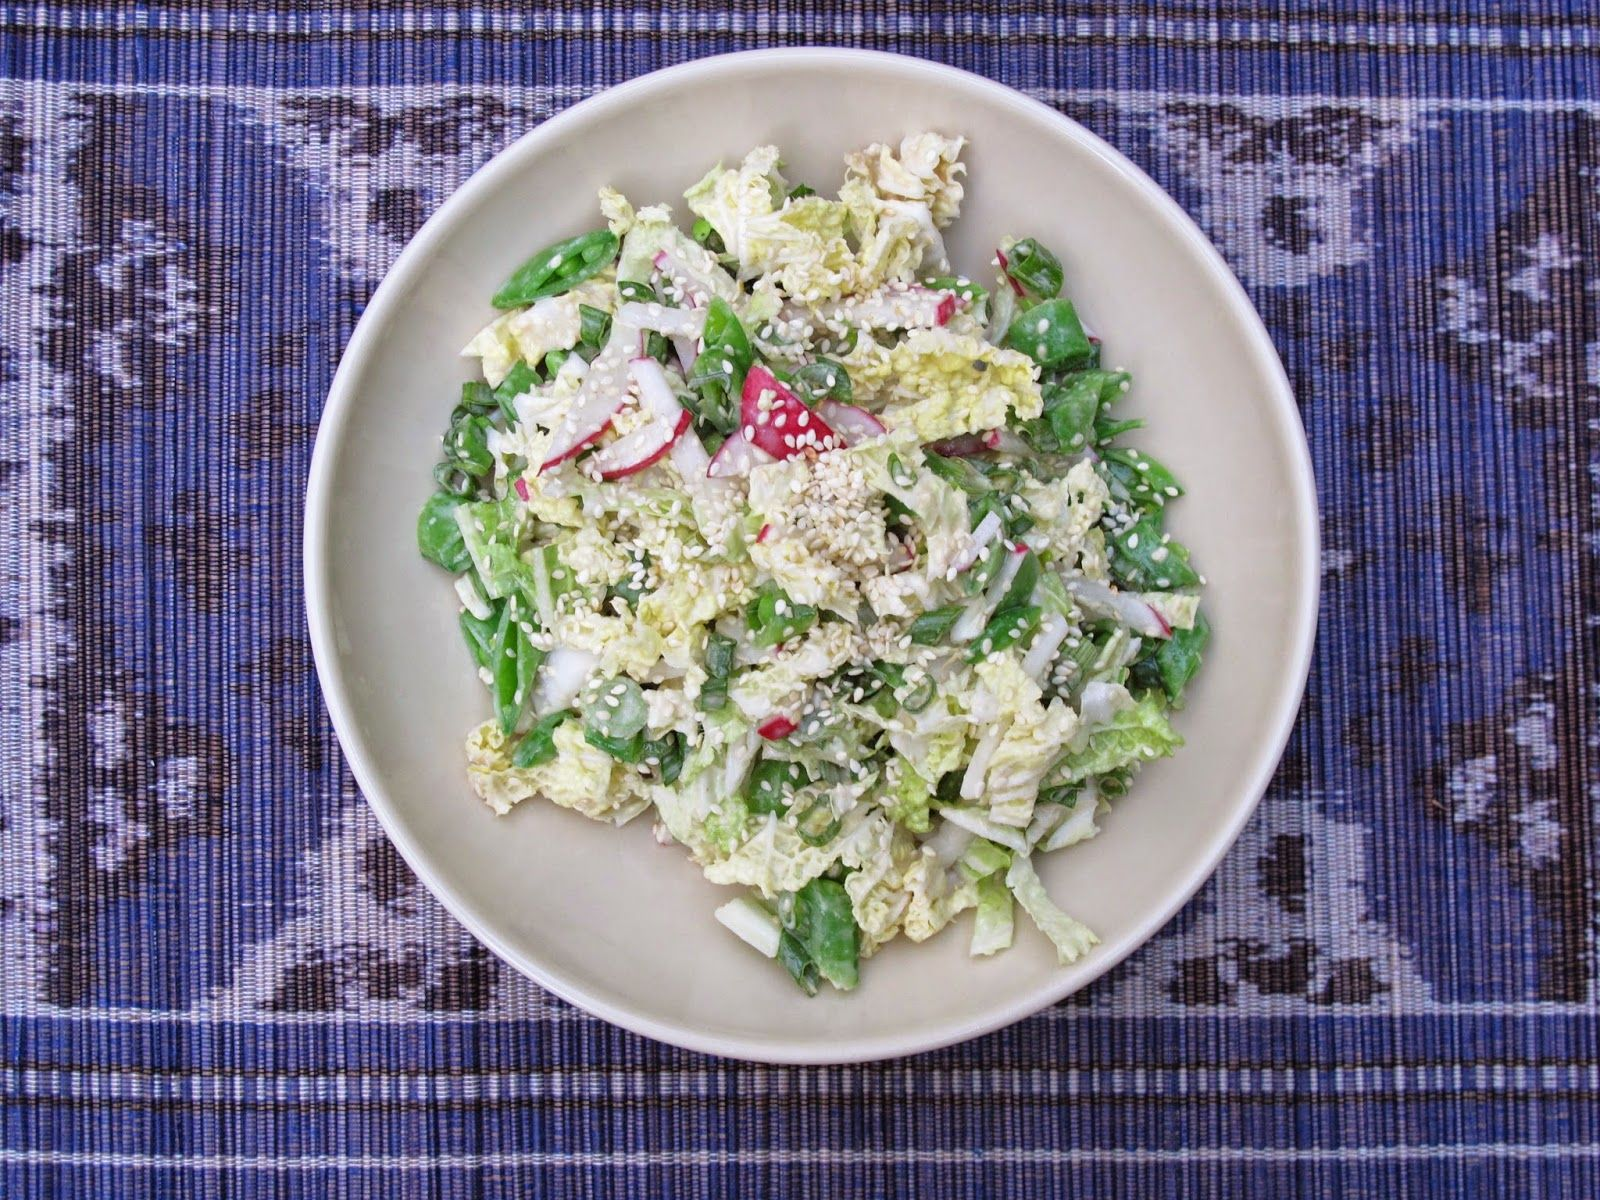 Snap Pea, Radish, and Napa Cabbage Salad with Creamy Ginger-Miso Dressing